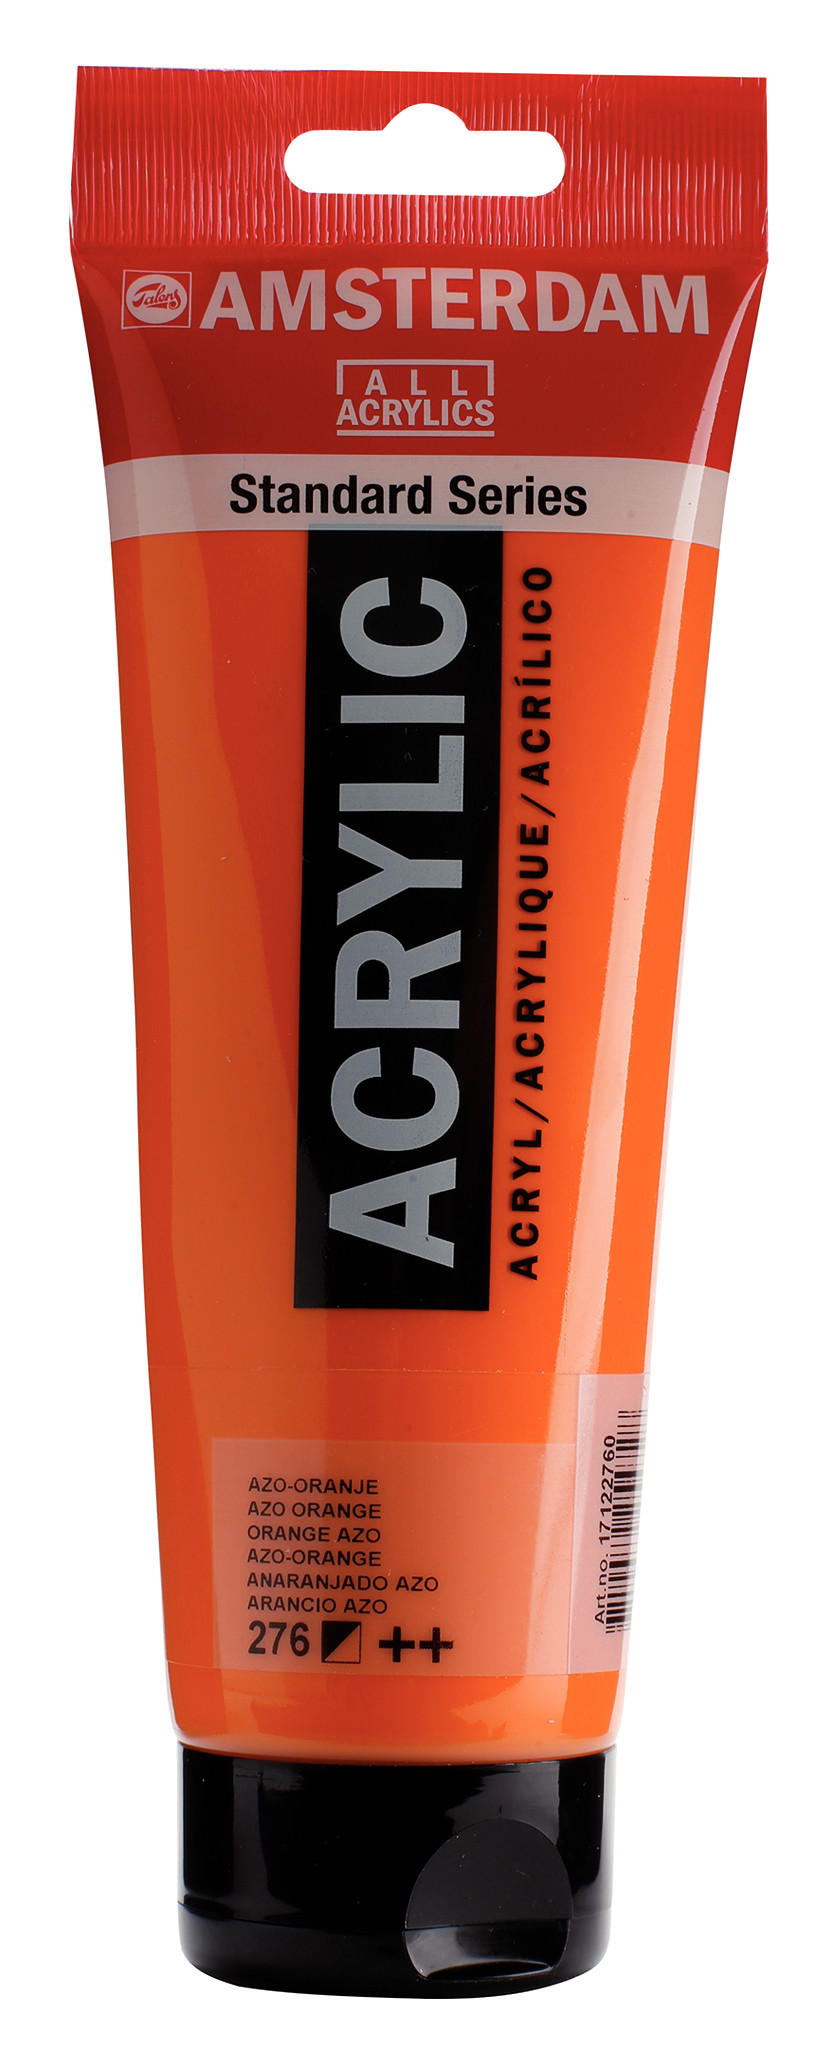 Amsterdam Standard Series Acrylic Tube 250 ml Azo orange 276